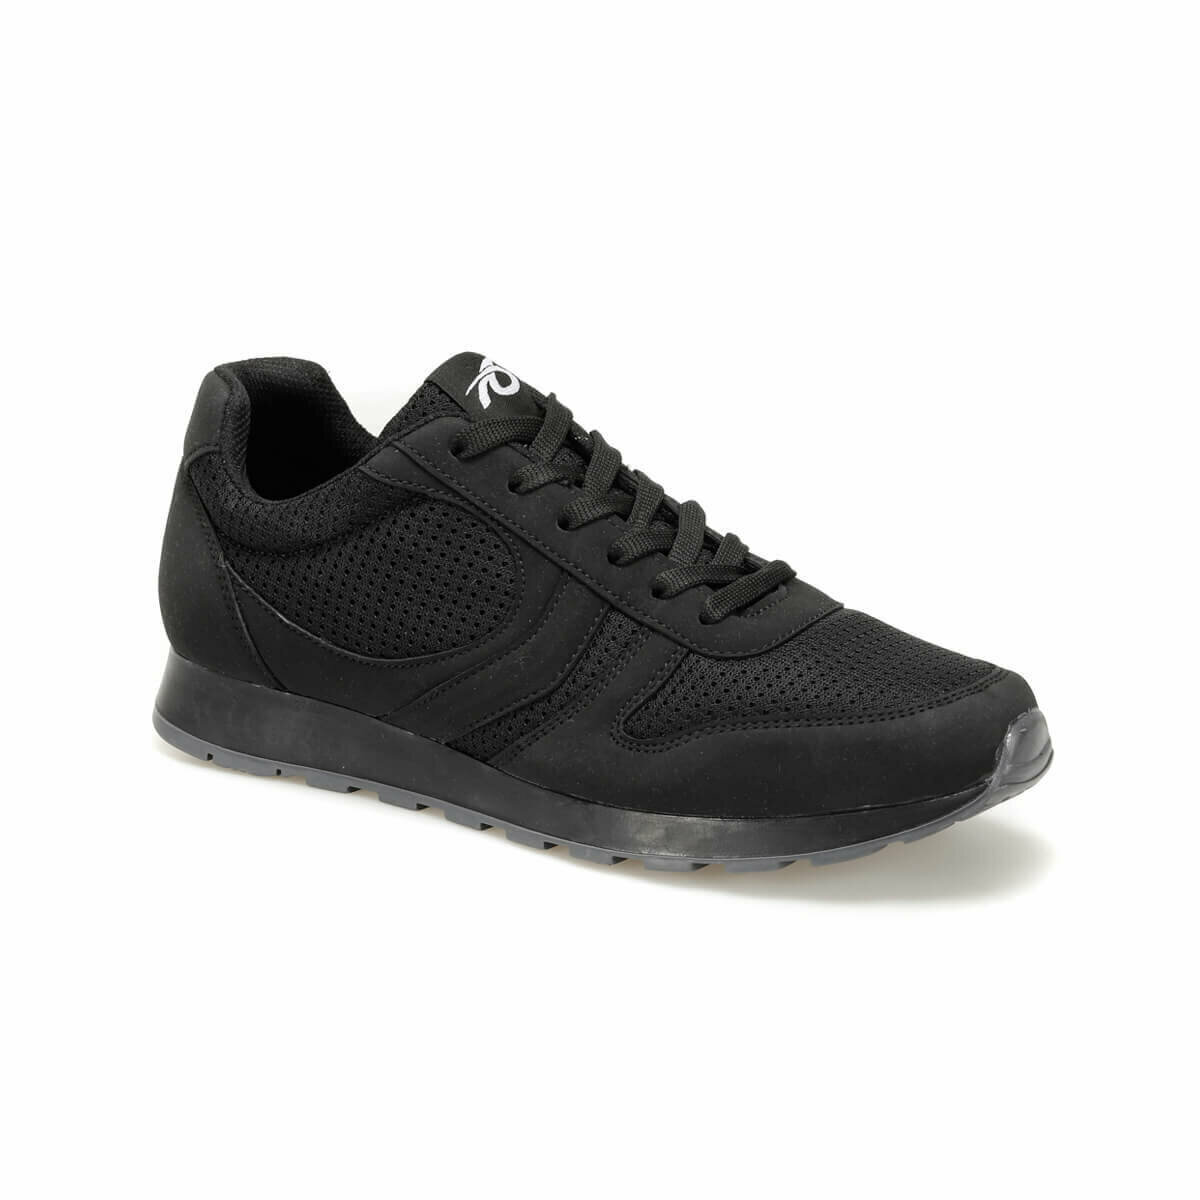 FLO GLADE Black Men 'S Sneaker Shoes Torex